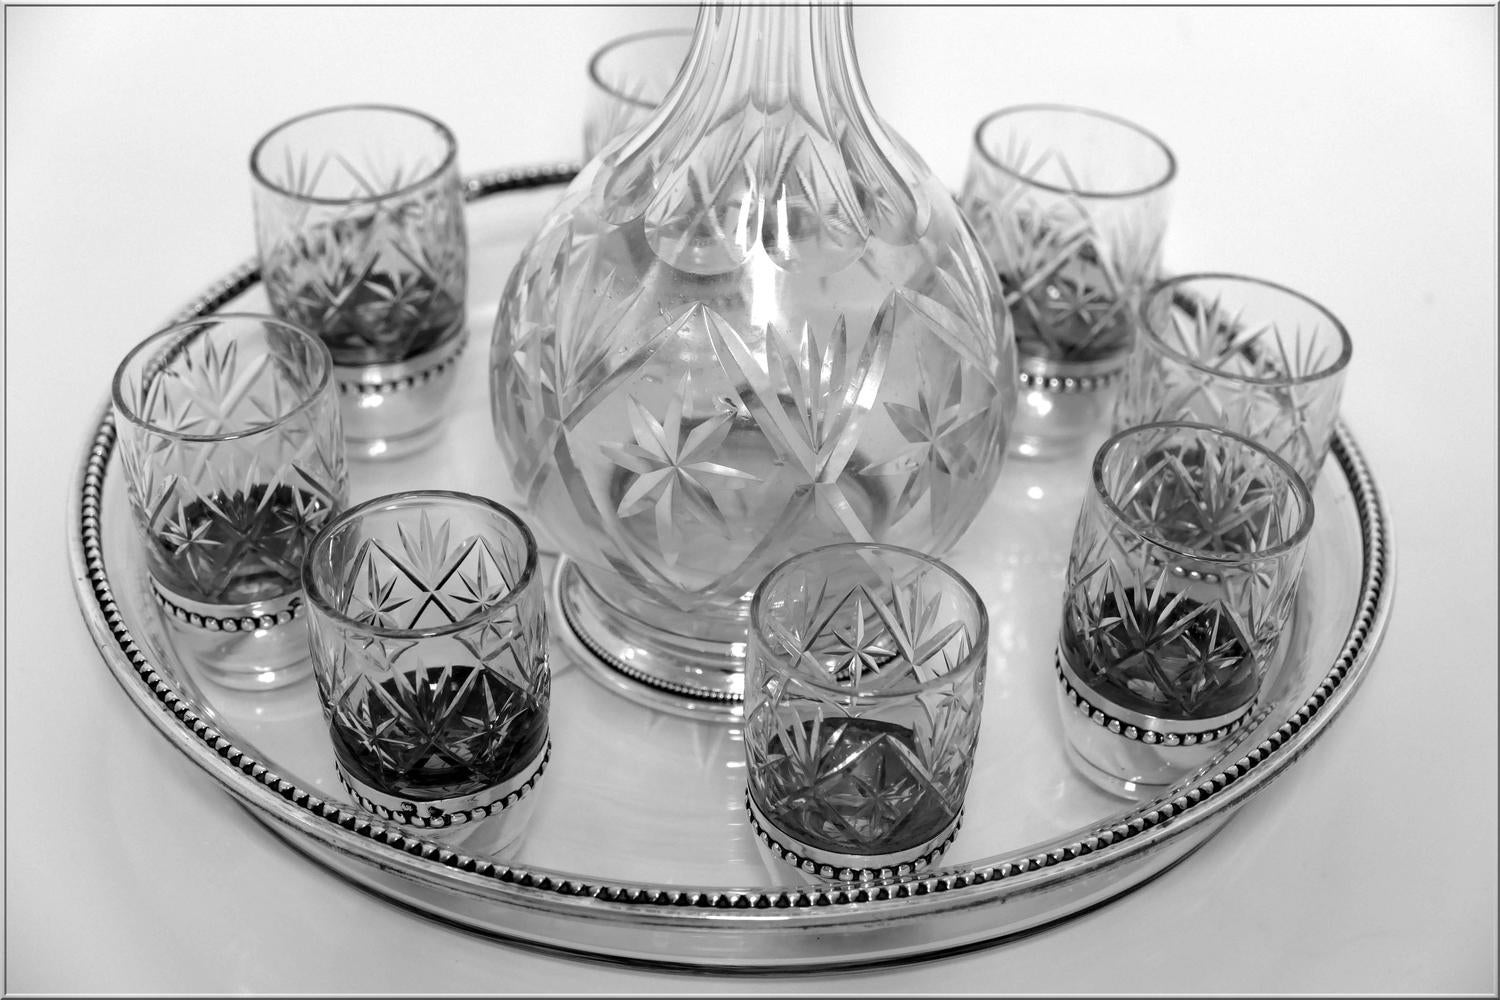 rare french sterling silver saint louis cut crystal liquor service at 1stdibs. Black Bedroom Furniture Sets. Home Design Ideas